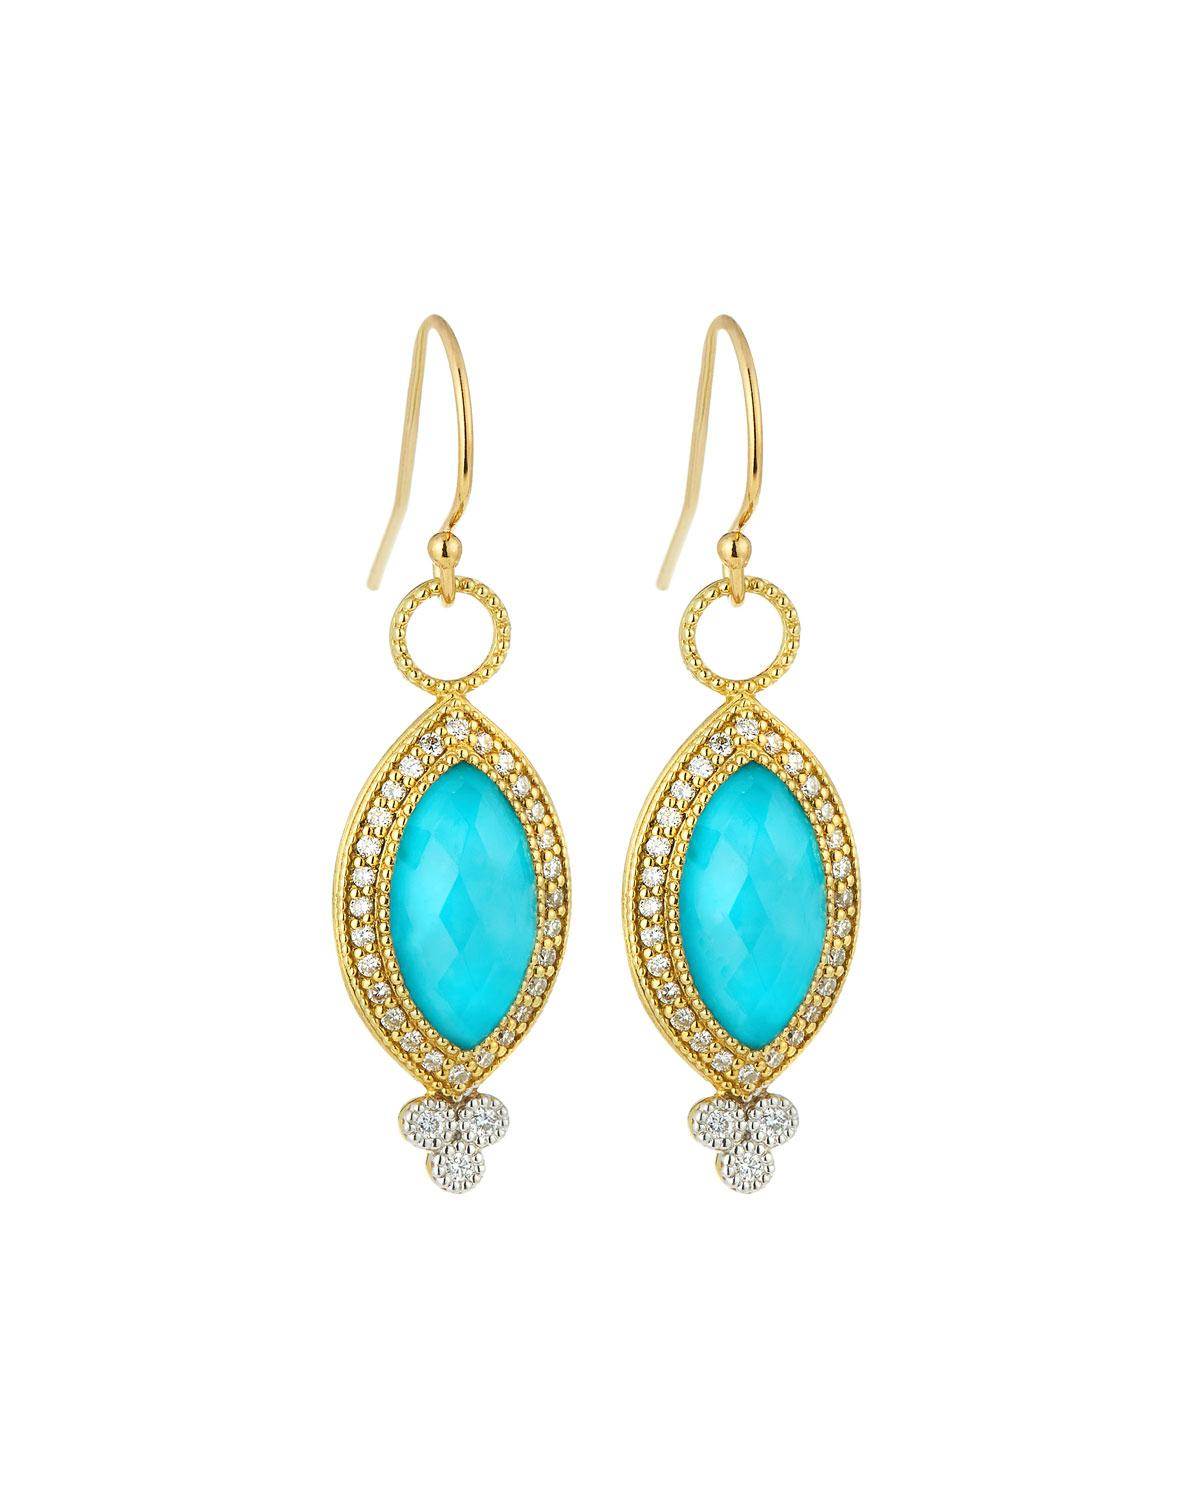 Jude Frances Lisse 18K Dangle/Drop Earrings with Turquoise 57cTj9E